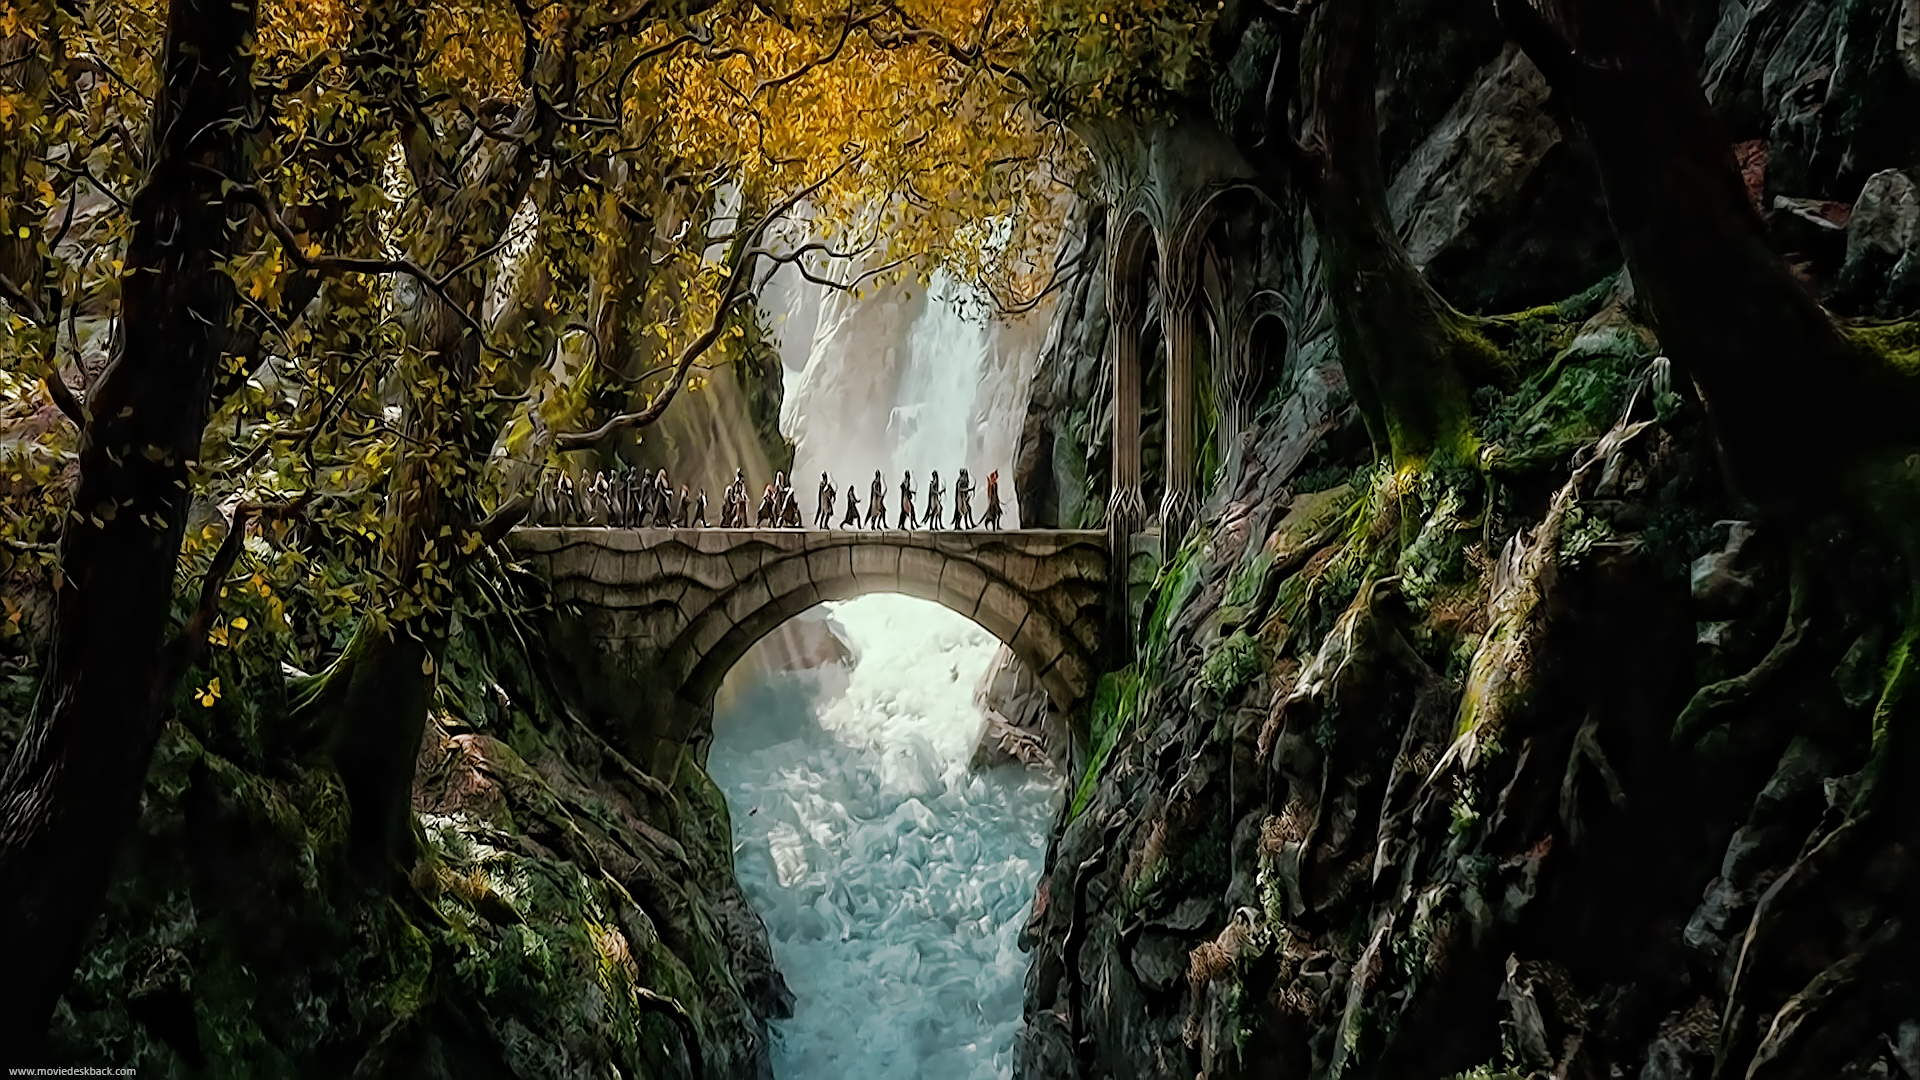 The Hobbit The Desolation of Smaug fantastic landscape wallpapers 1920x1080